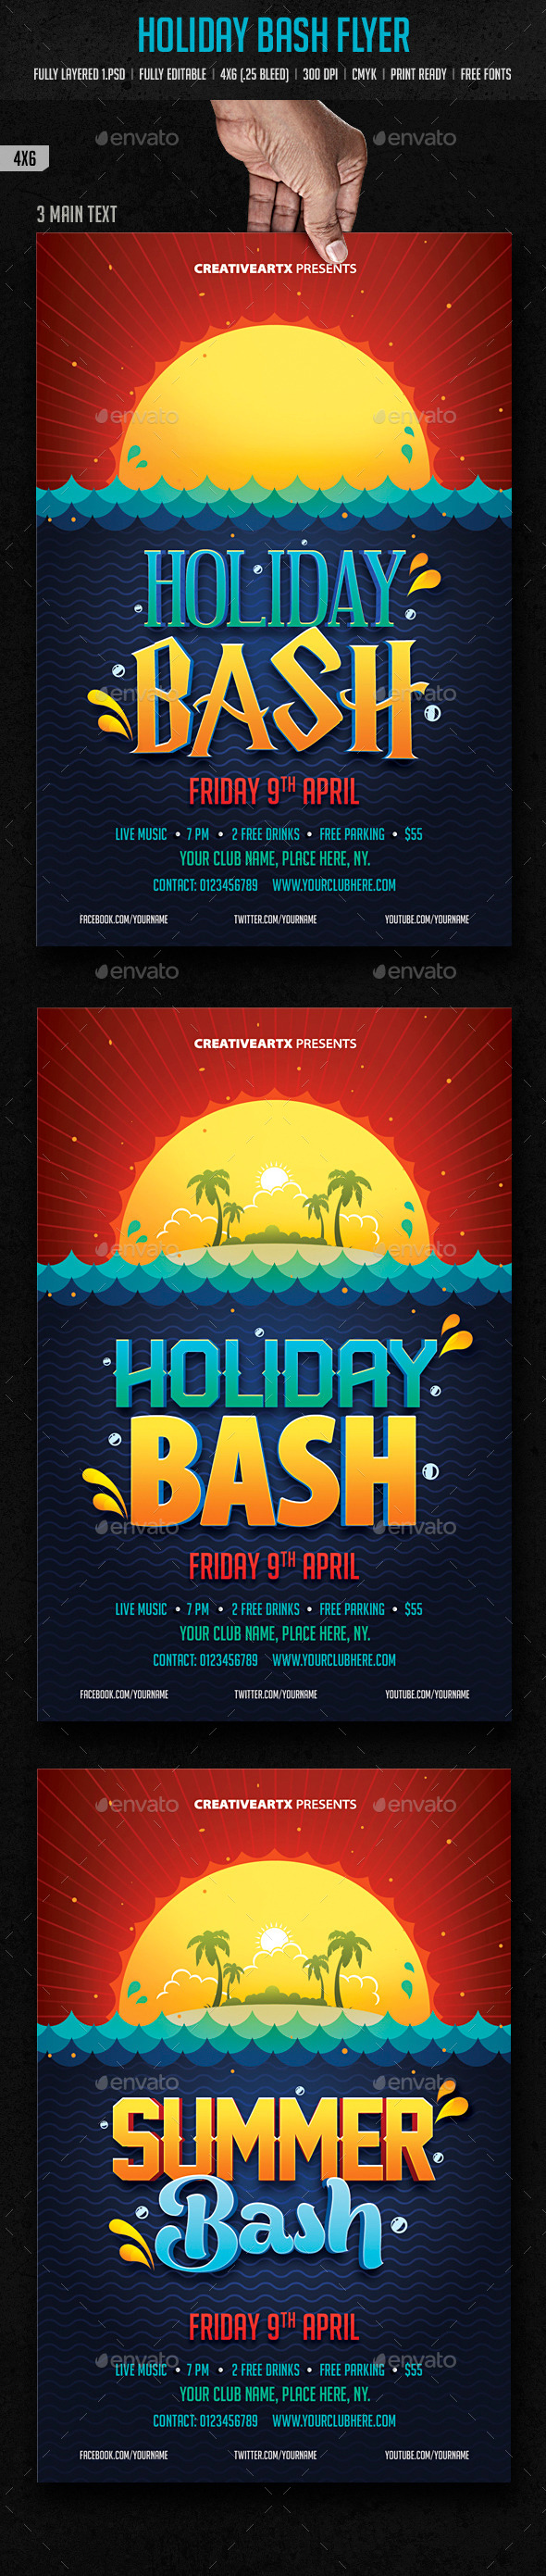 Holiday Bash Flyer - Clubs & Parties Events